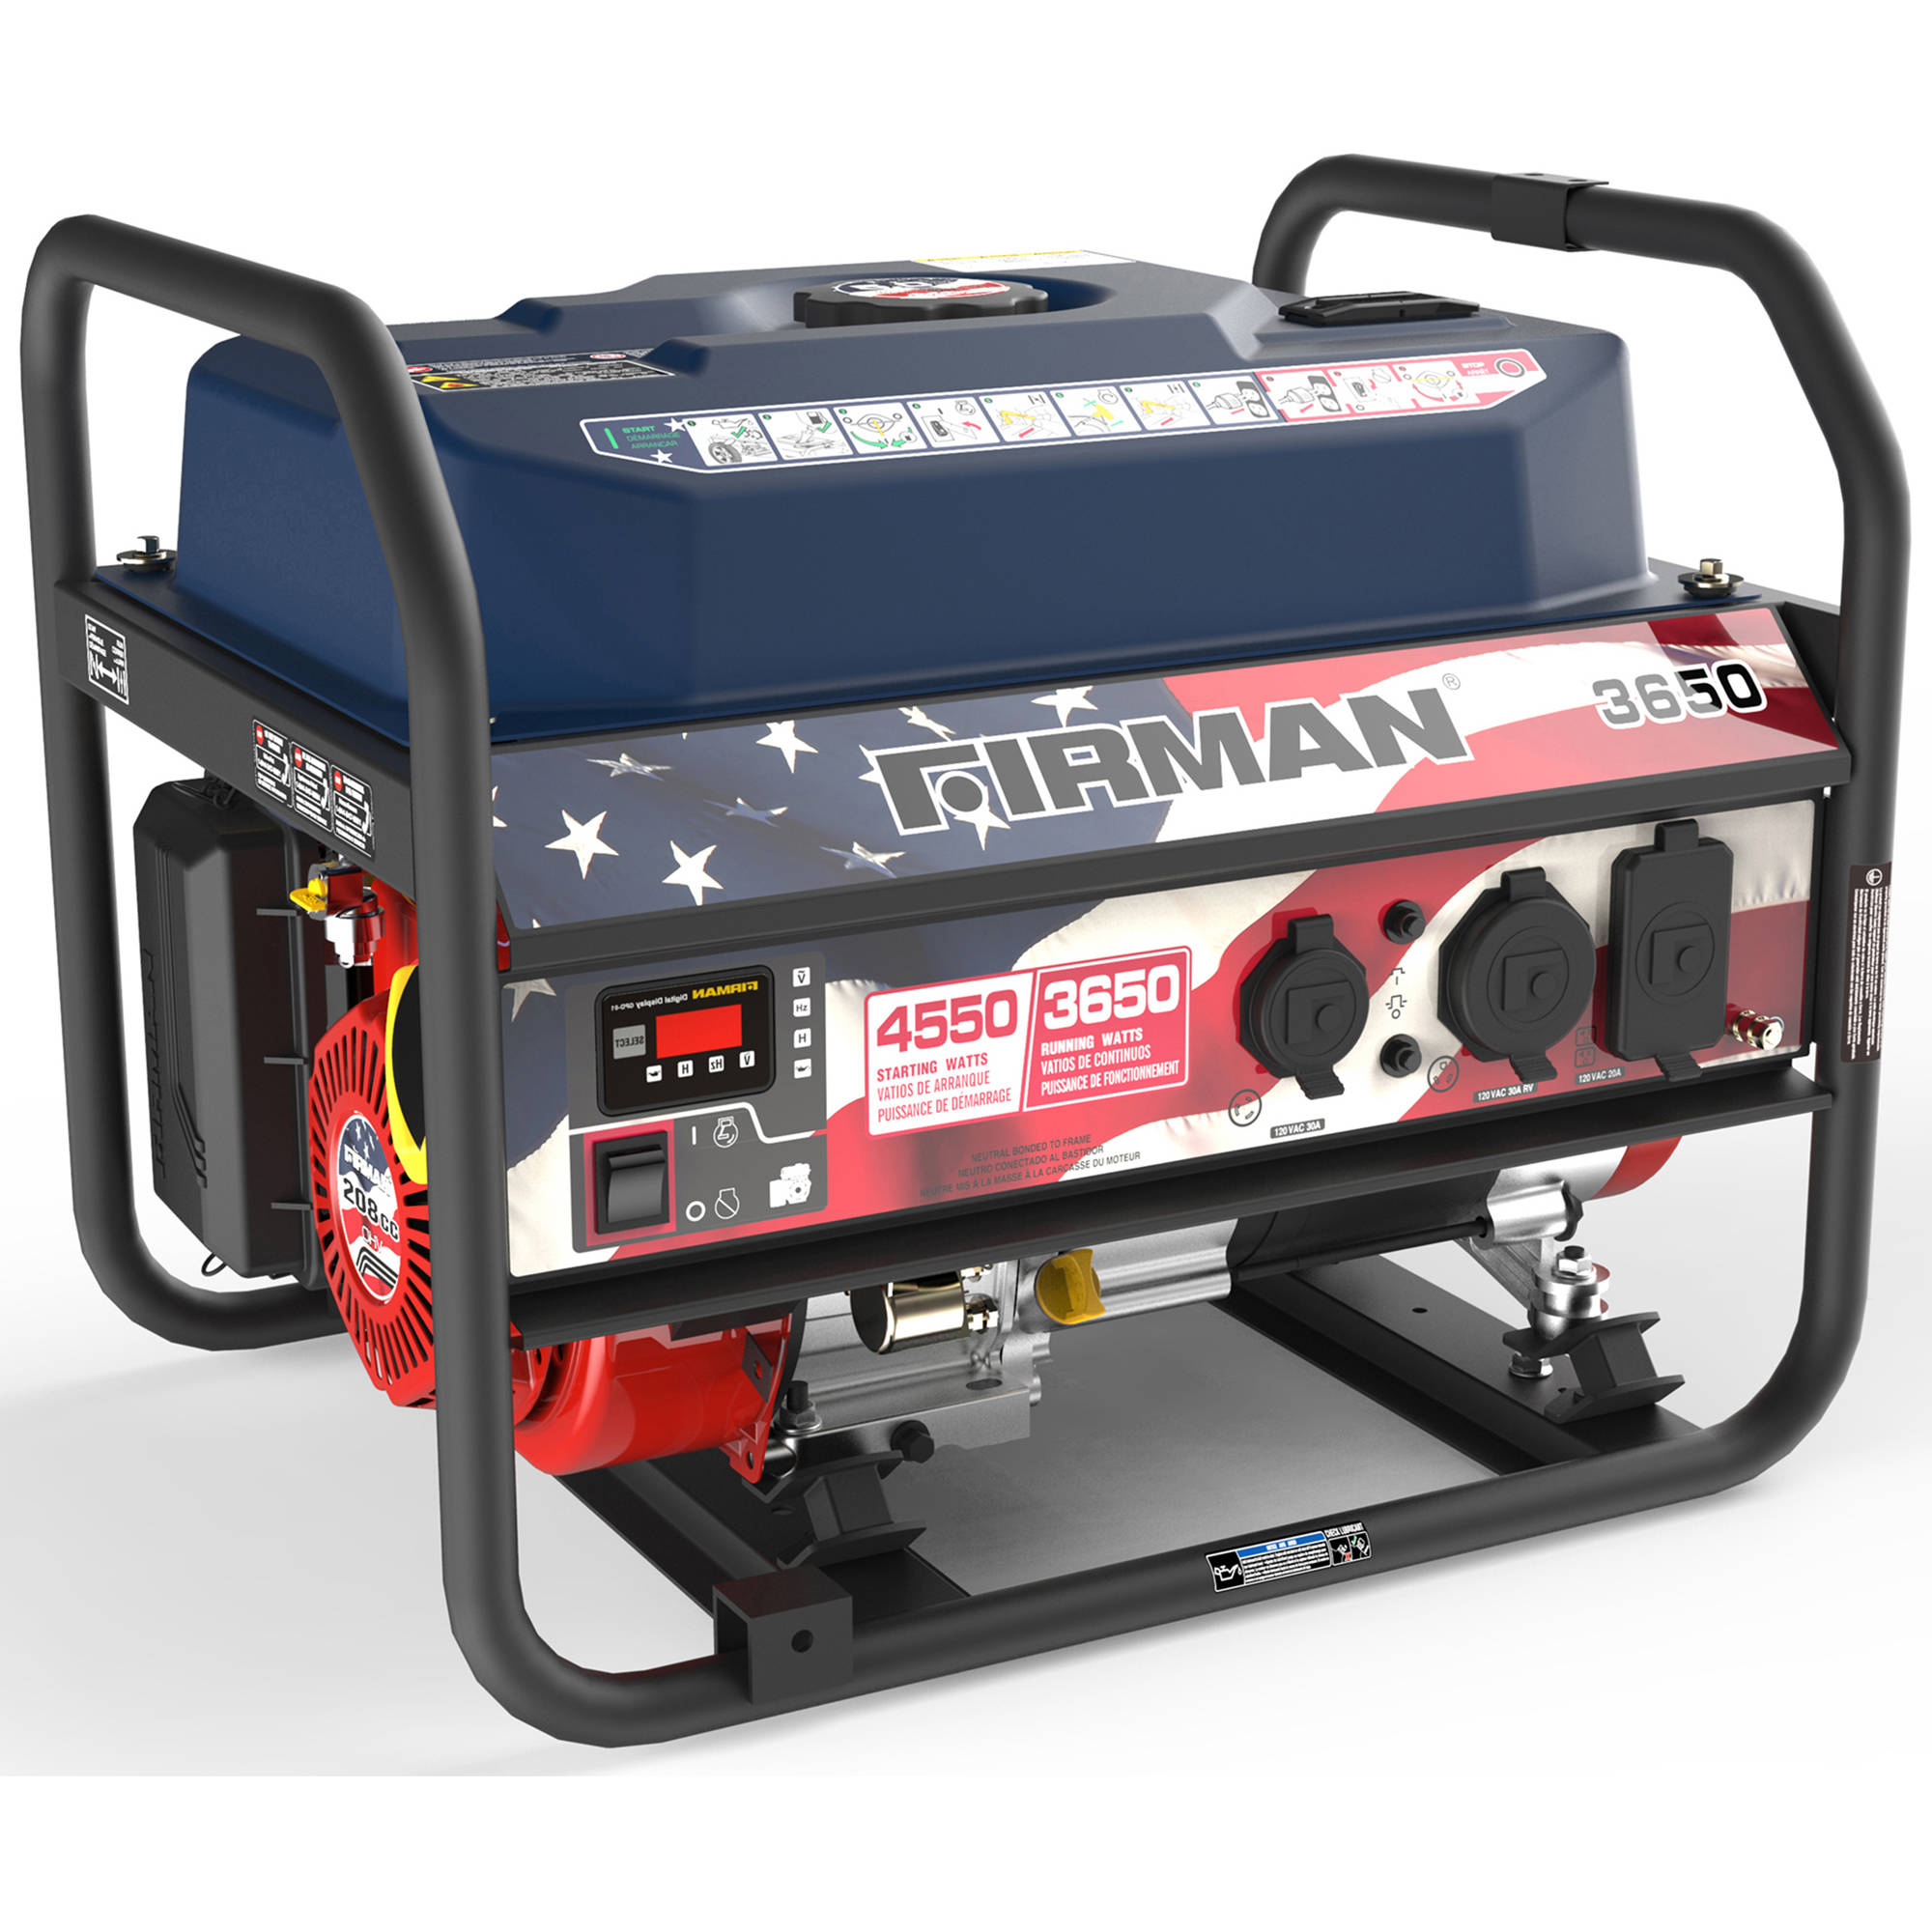 Firman Power Equipment P03611 Gas Powered 3650 4550 Watt (Performance Series) Extended Run Time Portable Generator, Red,... by Sumec